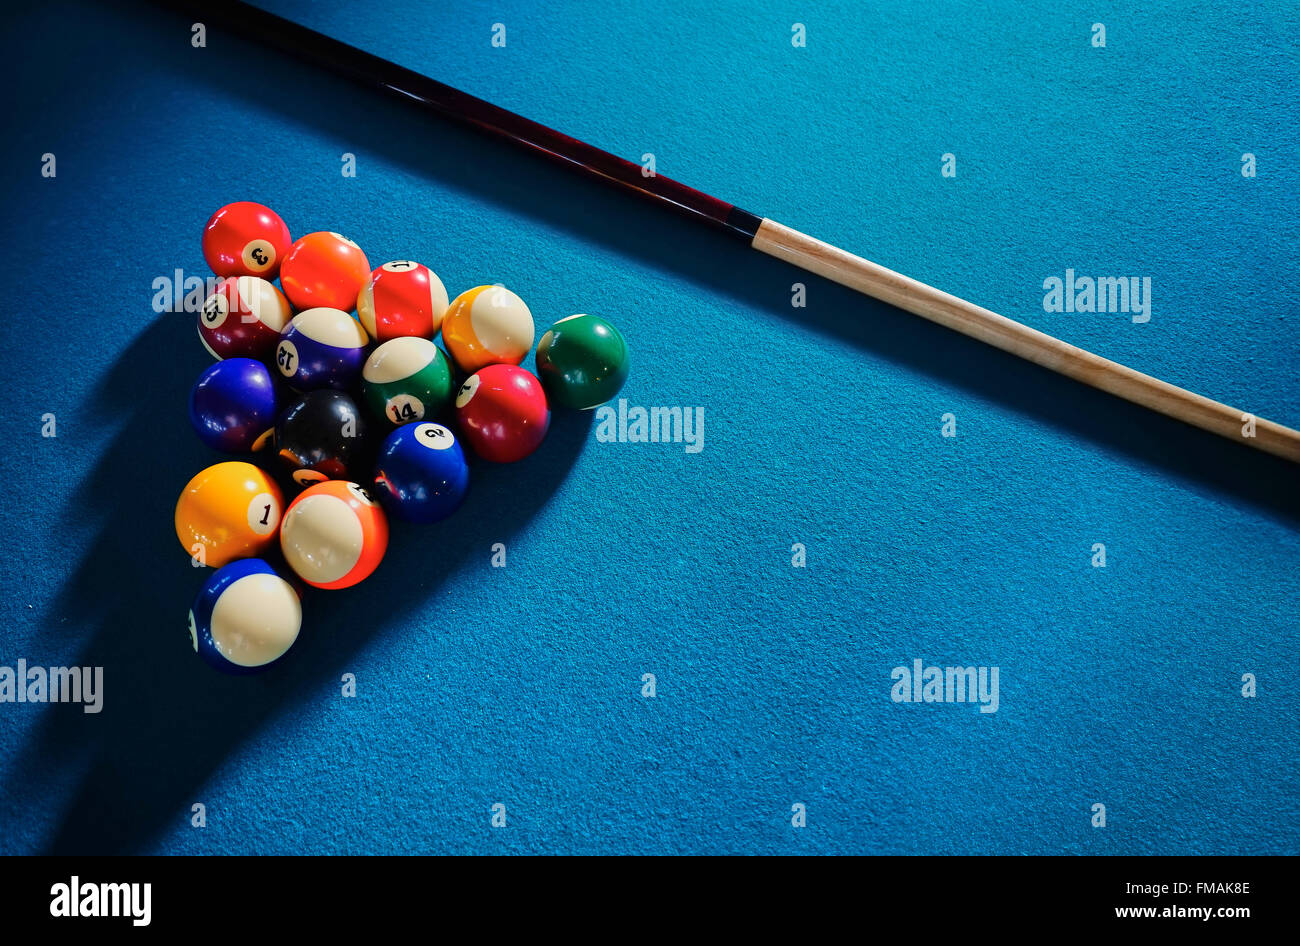 Billiard Balls and Cue on Blue Background - Stock Image